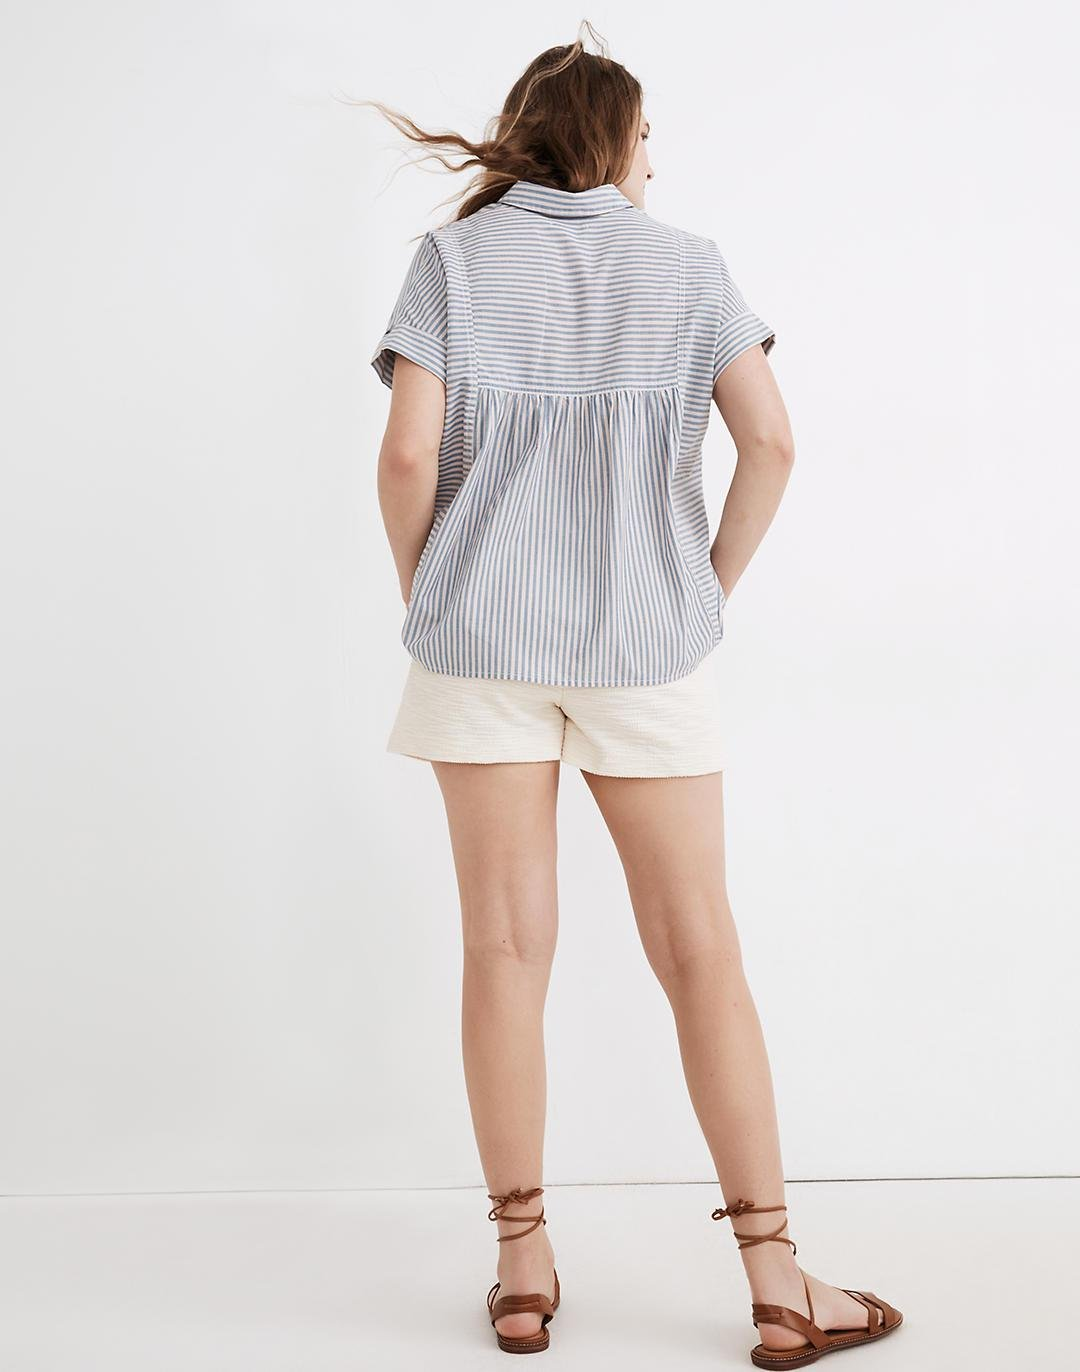 Lakeline Button-Up Shirt in Stripe-Play 2